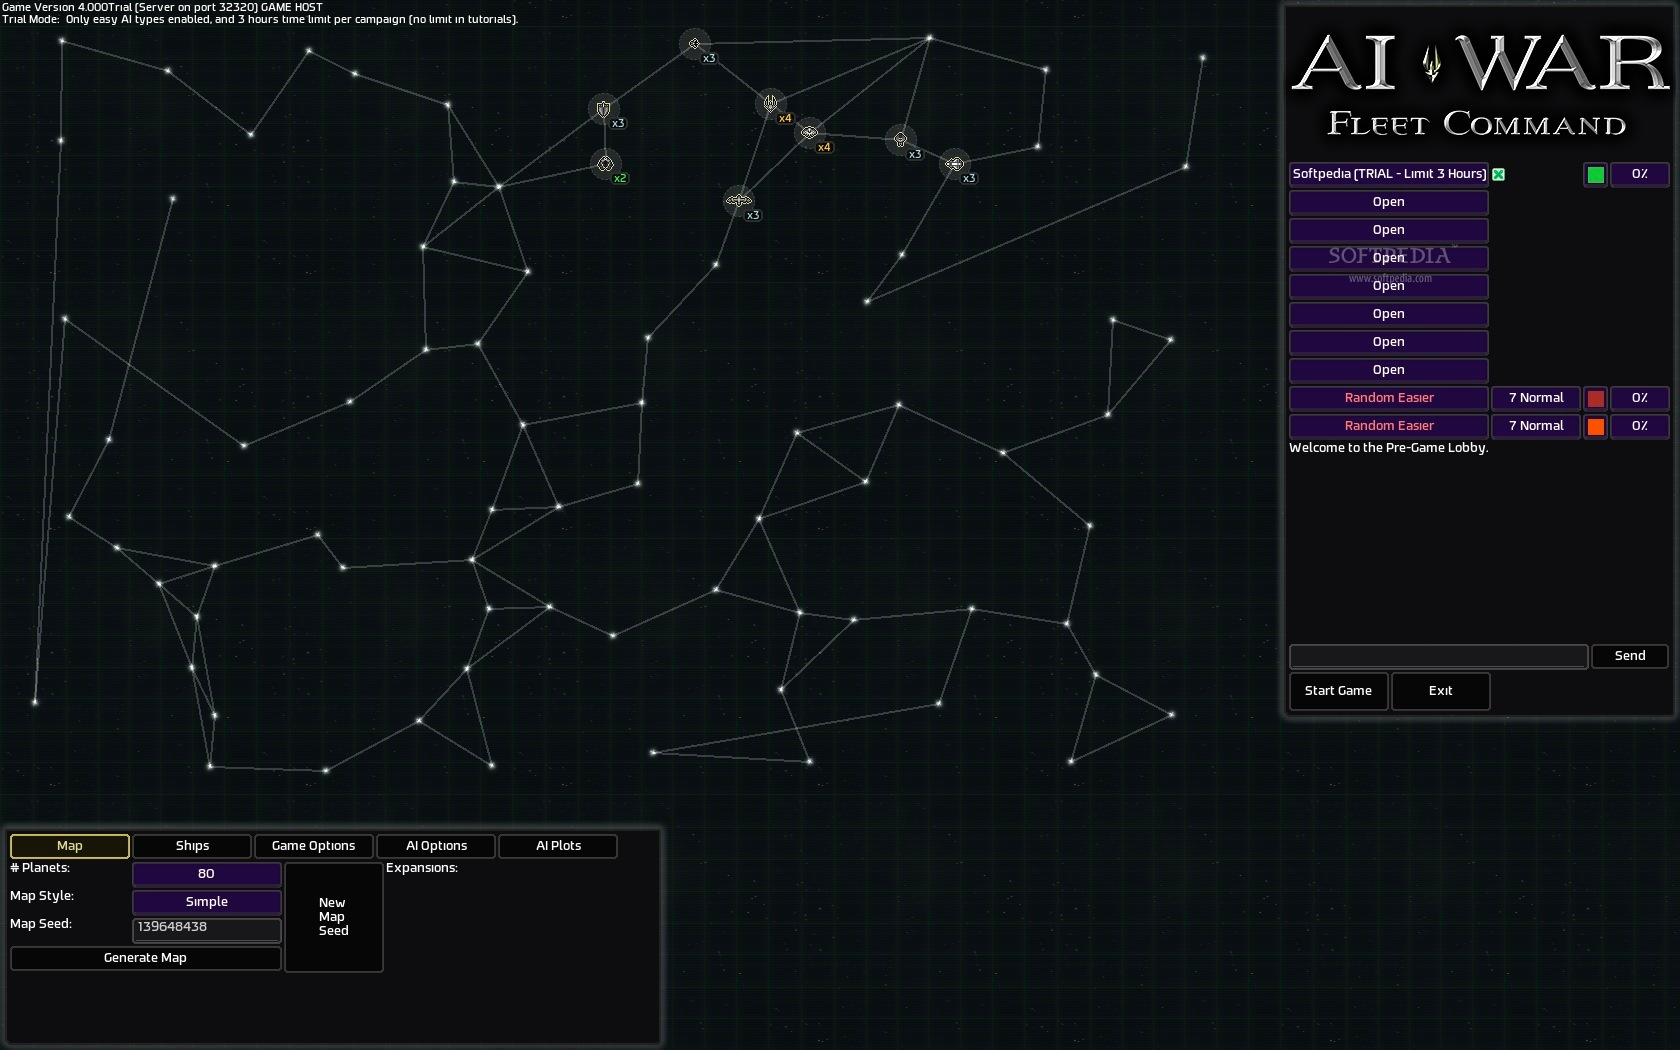 AI War: Fleet Command screenshot 8 - Exploring the universe.